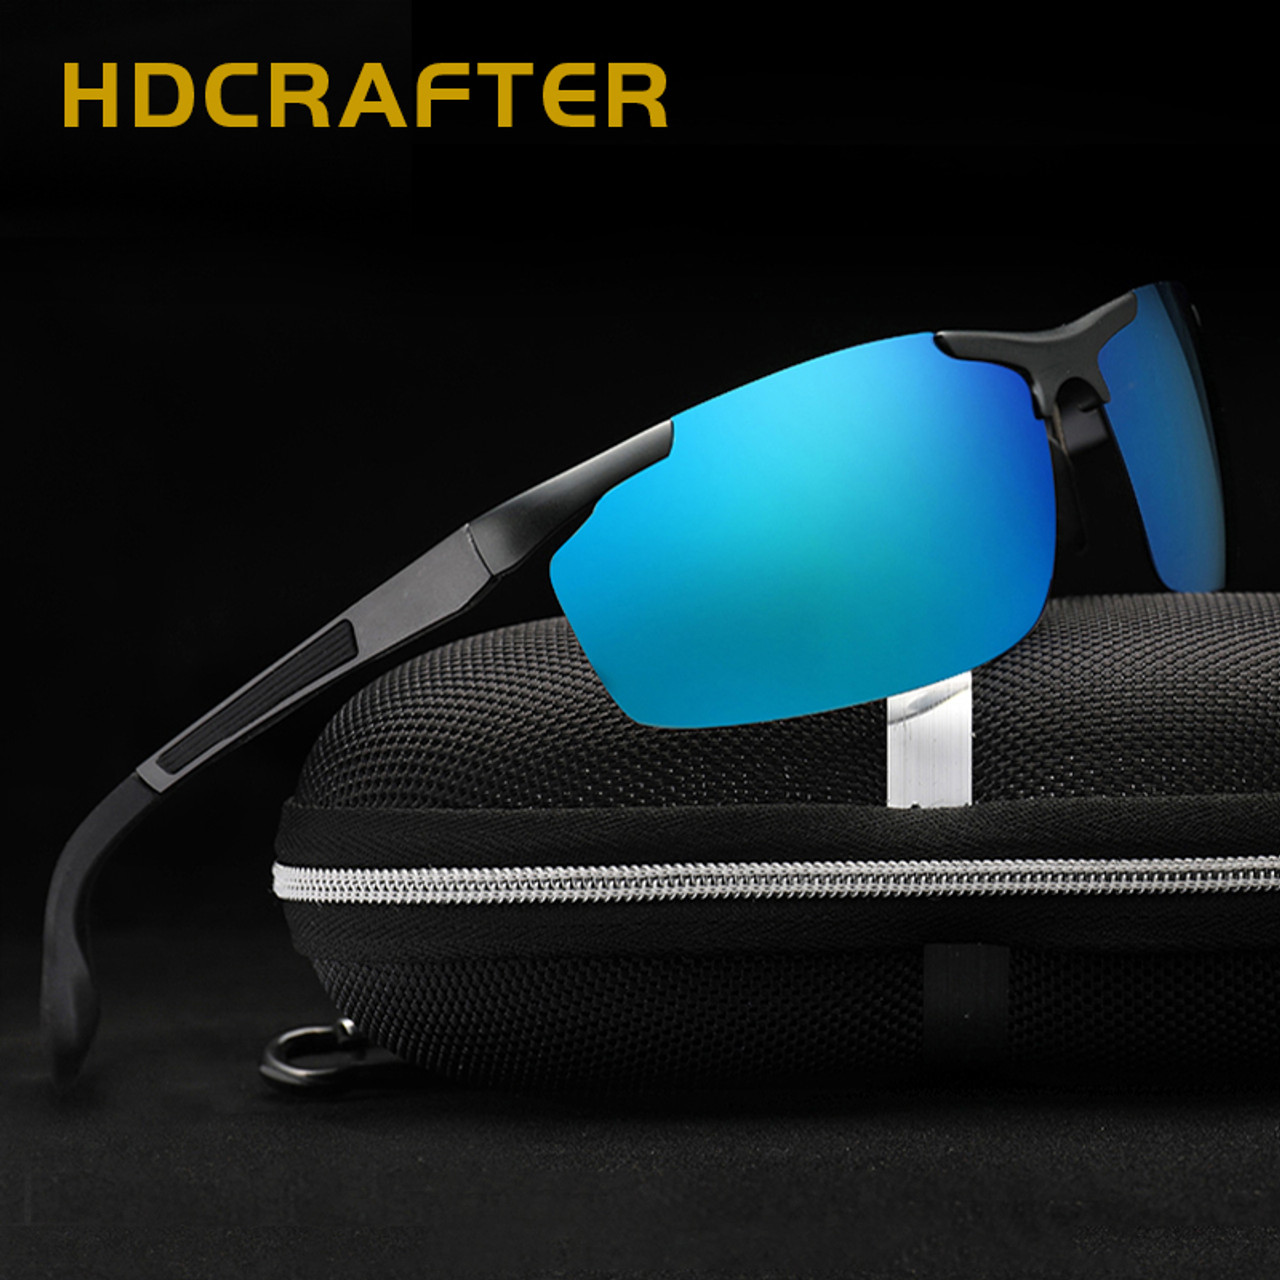 977c3d5ac8 HDCRAFTER New Fashion Men s Polarized Sunglasses Brand Design Aluminum  Magnesium Sun Glasses For Driving Fishing - OnshopDeals.Com